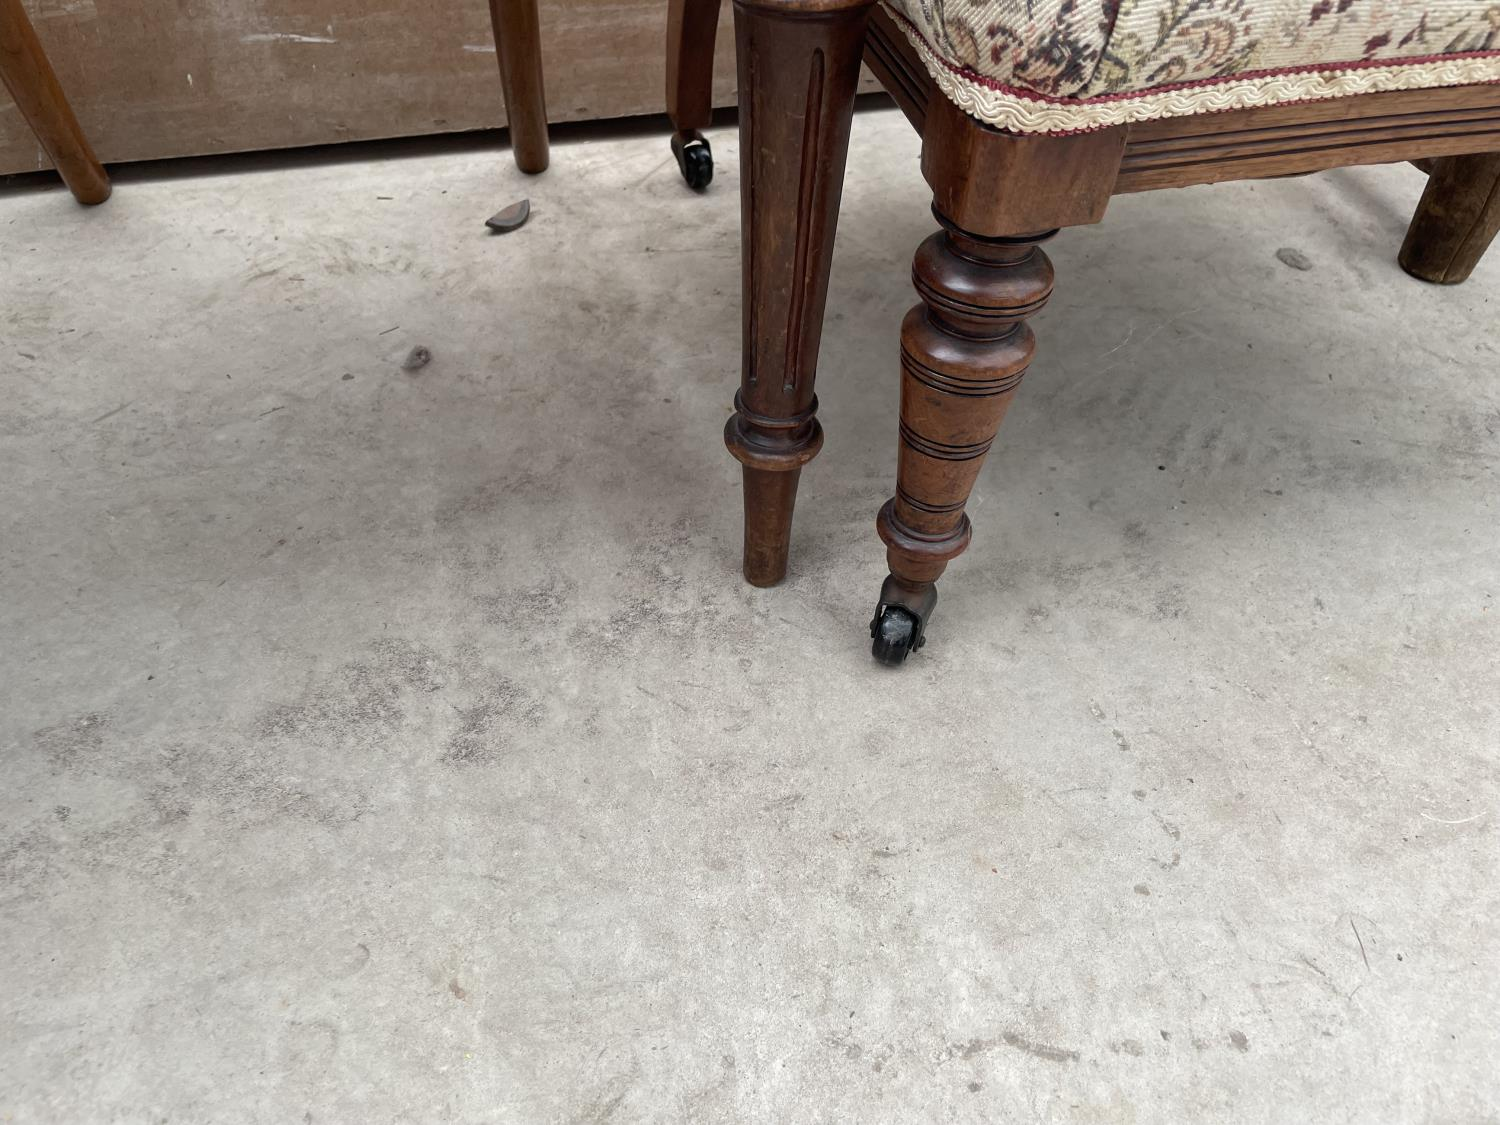 A SET OF FIVE MID 20TH CENTURY STYLE DINING CHAIRS WITH WHALE FIN BACKS - Image 10 of 10